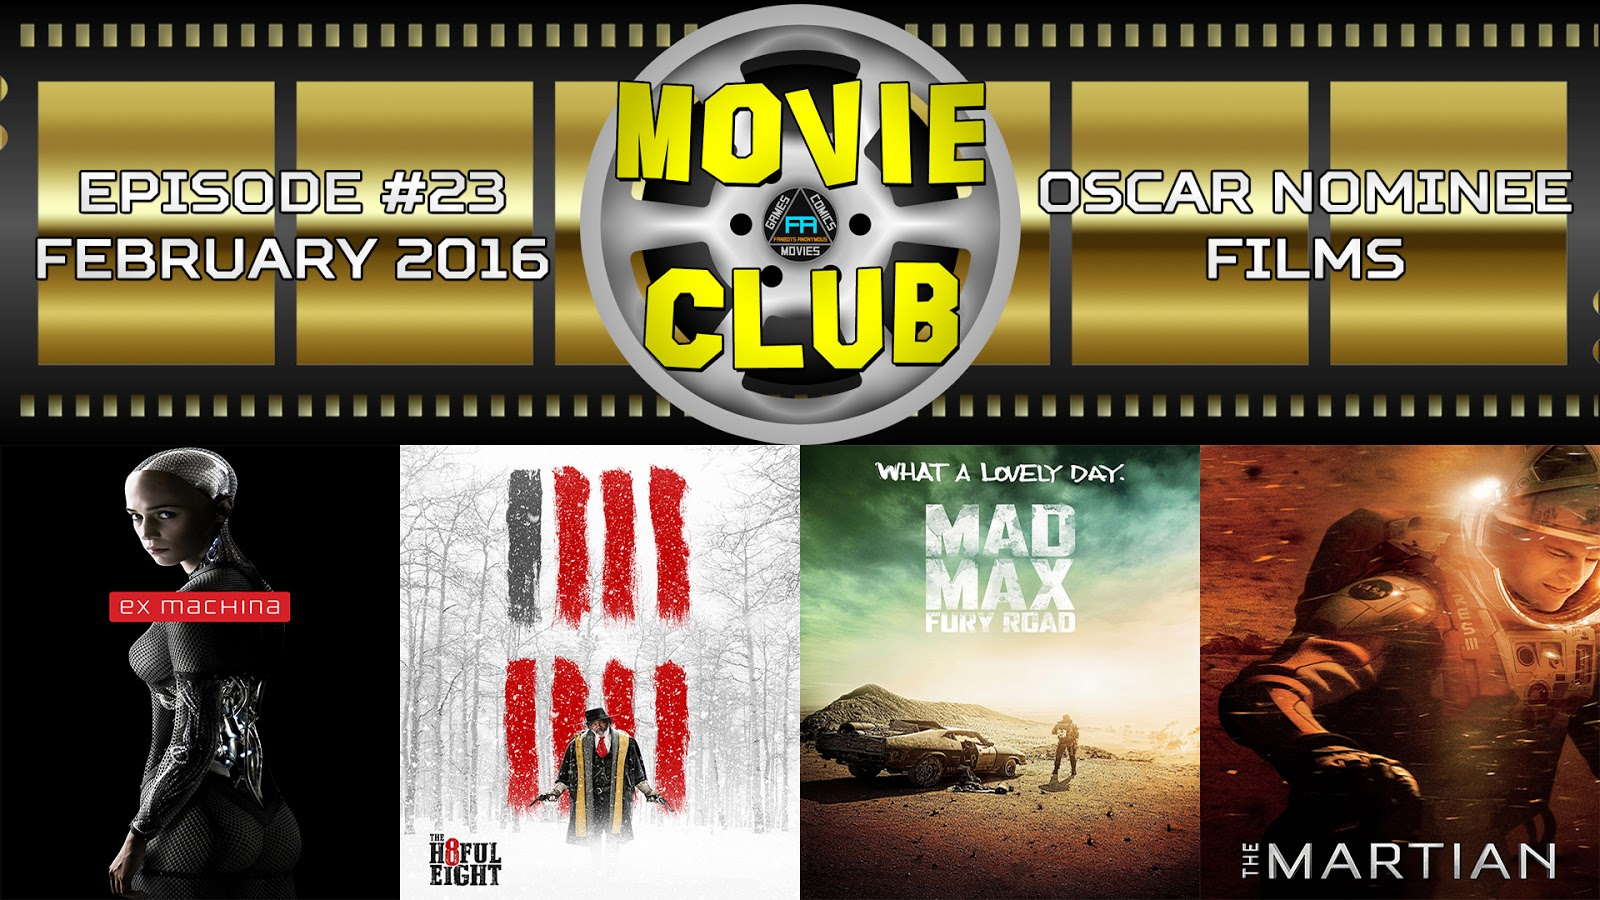 Ex Machina, The Hateful Eight, Mad Max: Fury Road, The Martian